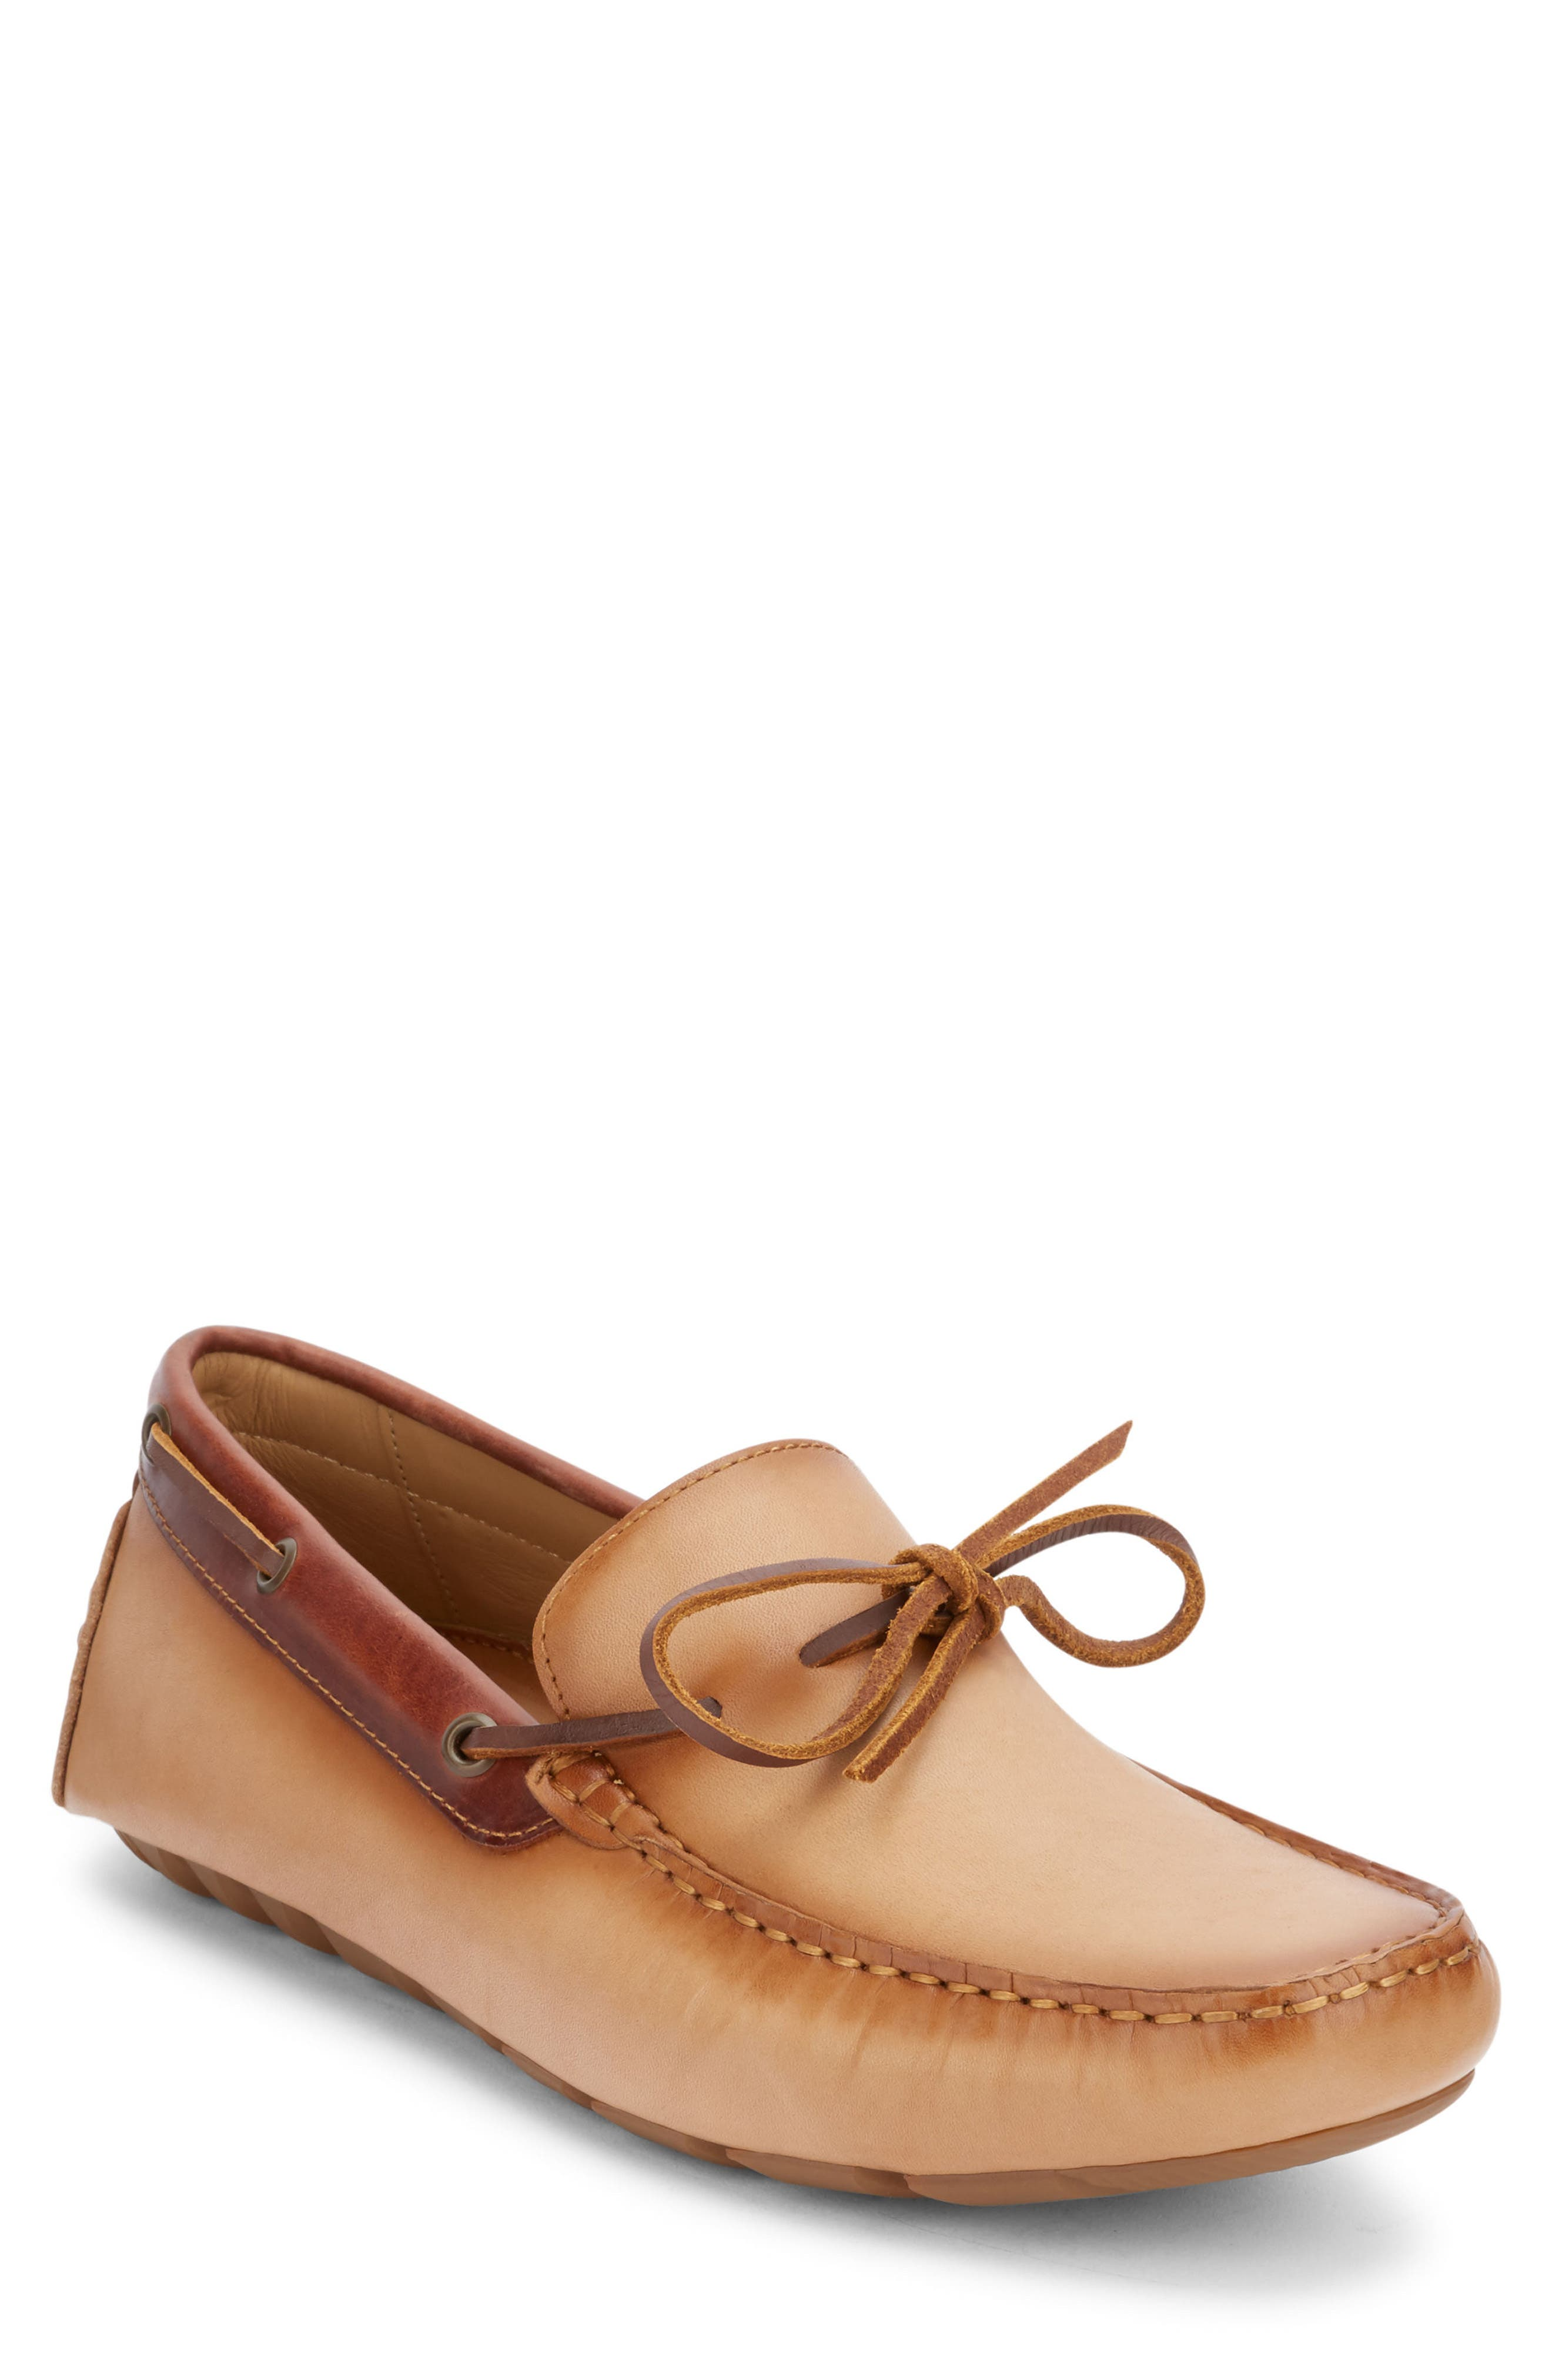 Wyatt Driving Shoe,                             Main thumbnail 1, color,                             Vachetta Leather